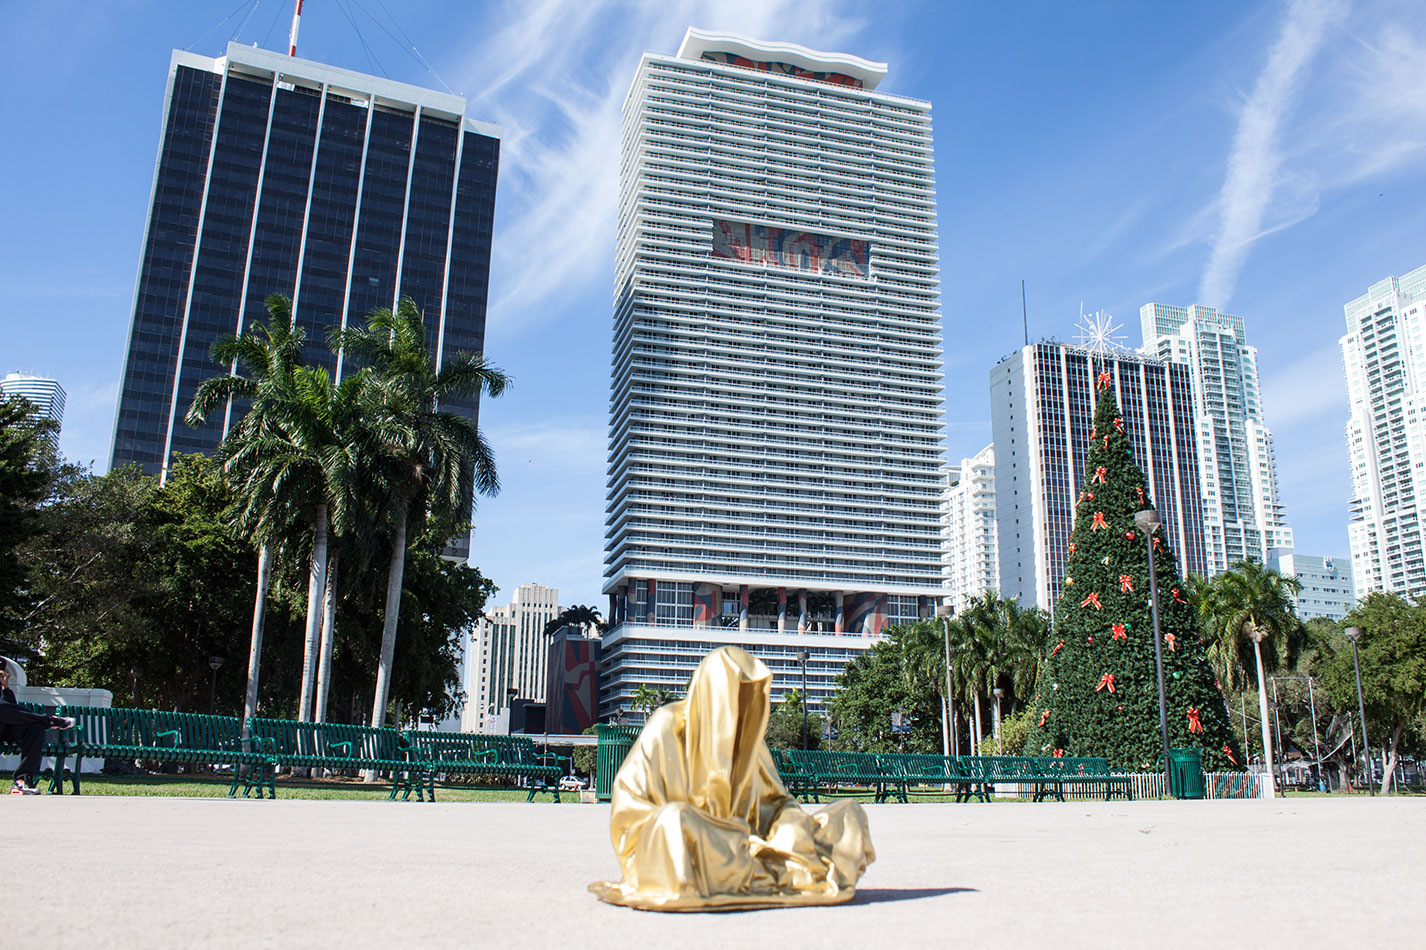 public-art-basel-miami-beach-fair-usa-florida-guardians-of-time-manfred-kili-kielnhofer-contemporary-fine-art-modern-arts-design-antiques-sculpture-6693